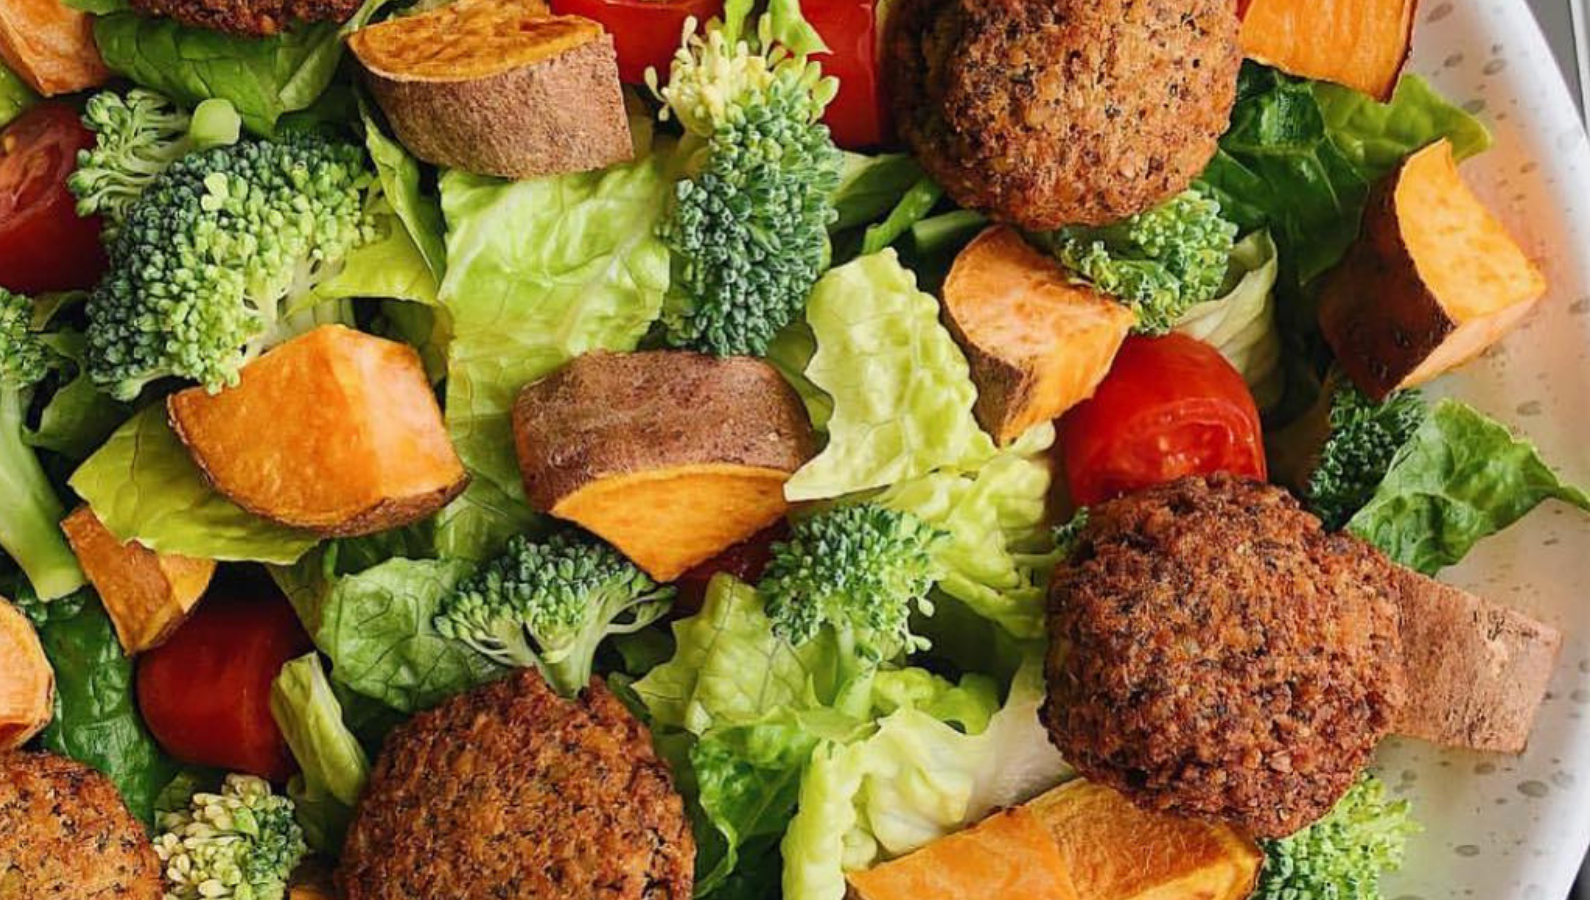 Mix up Wundernuggets in your salad bowl for a wholesome meal!